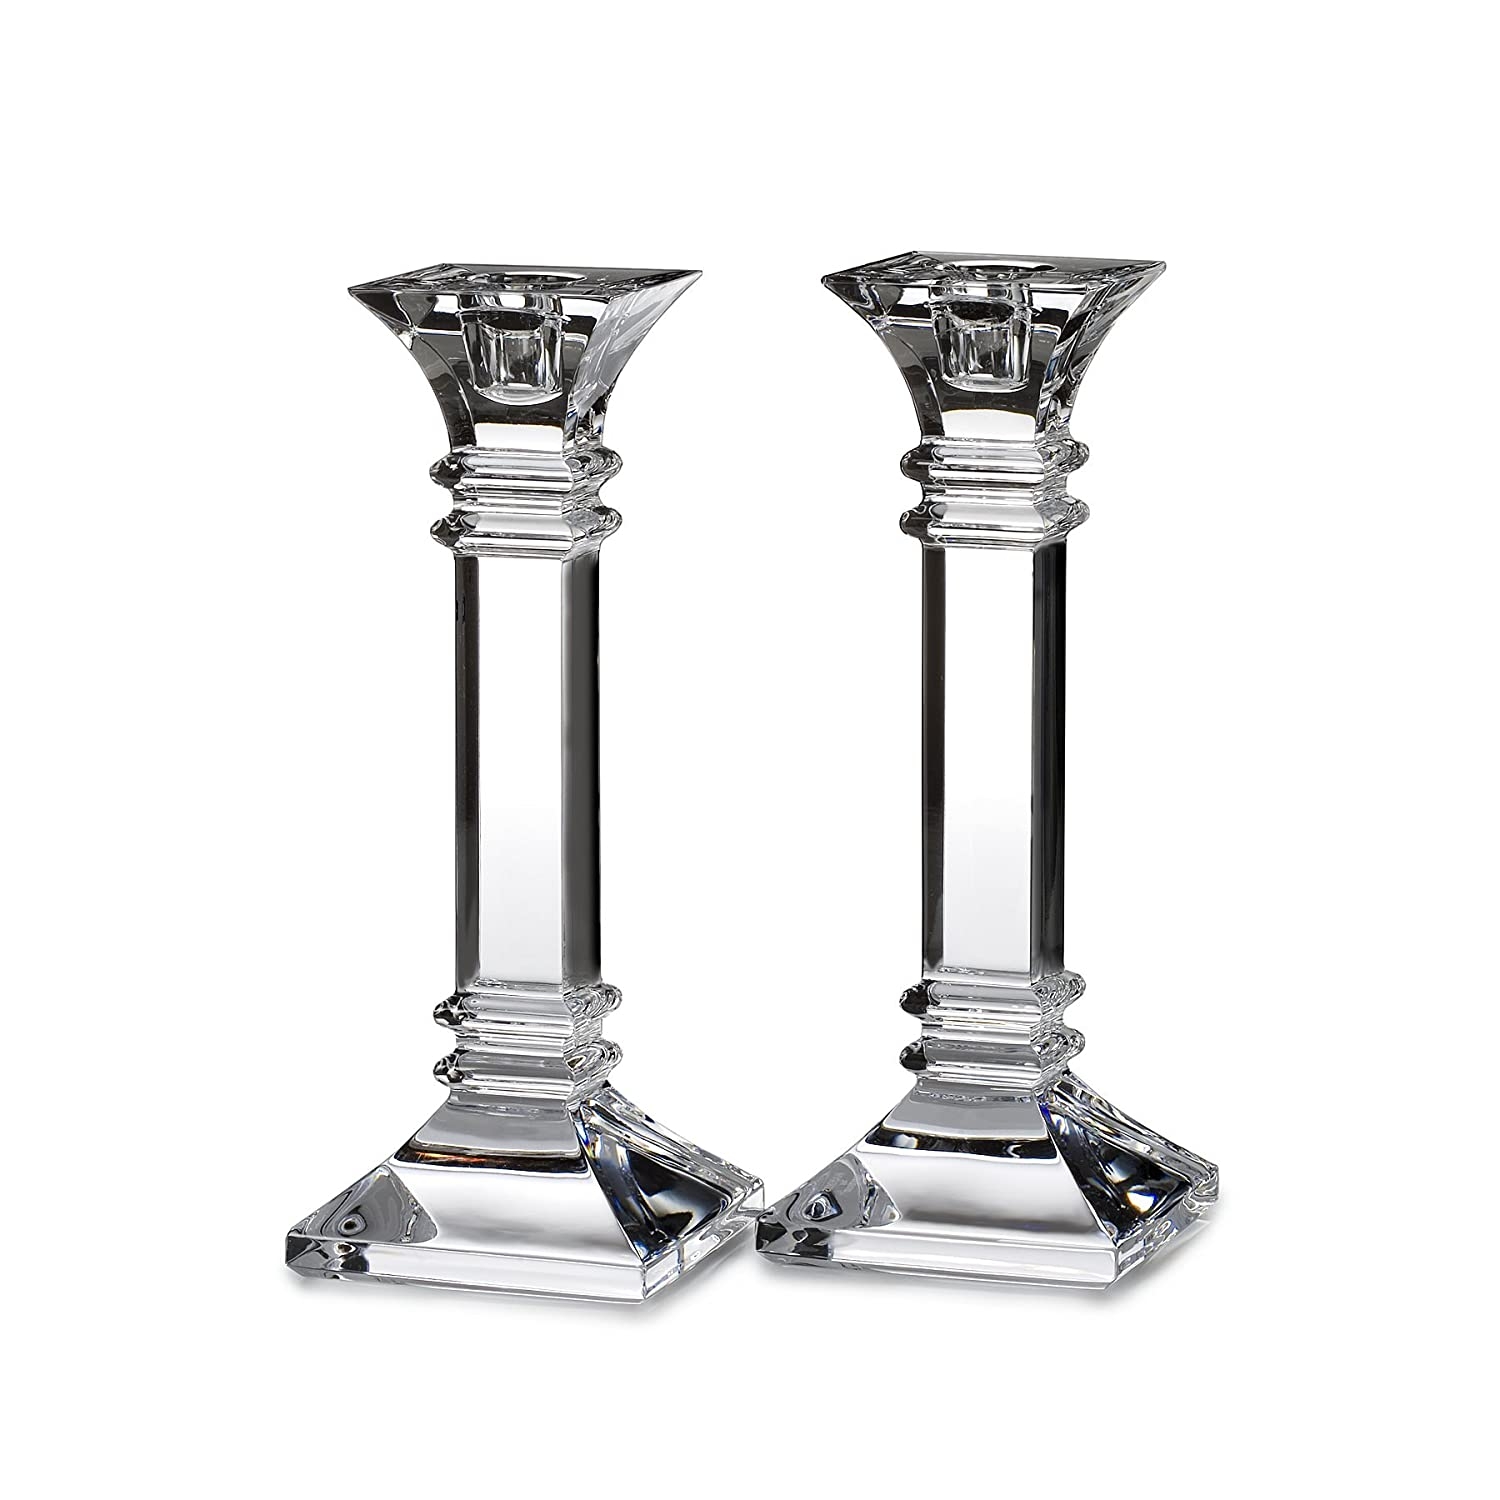 Amazon.com: Marquis by Waterford Treviso 8-Inch Candle Holders ...